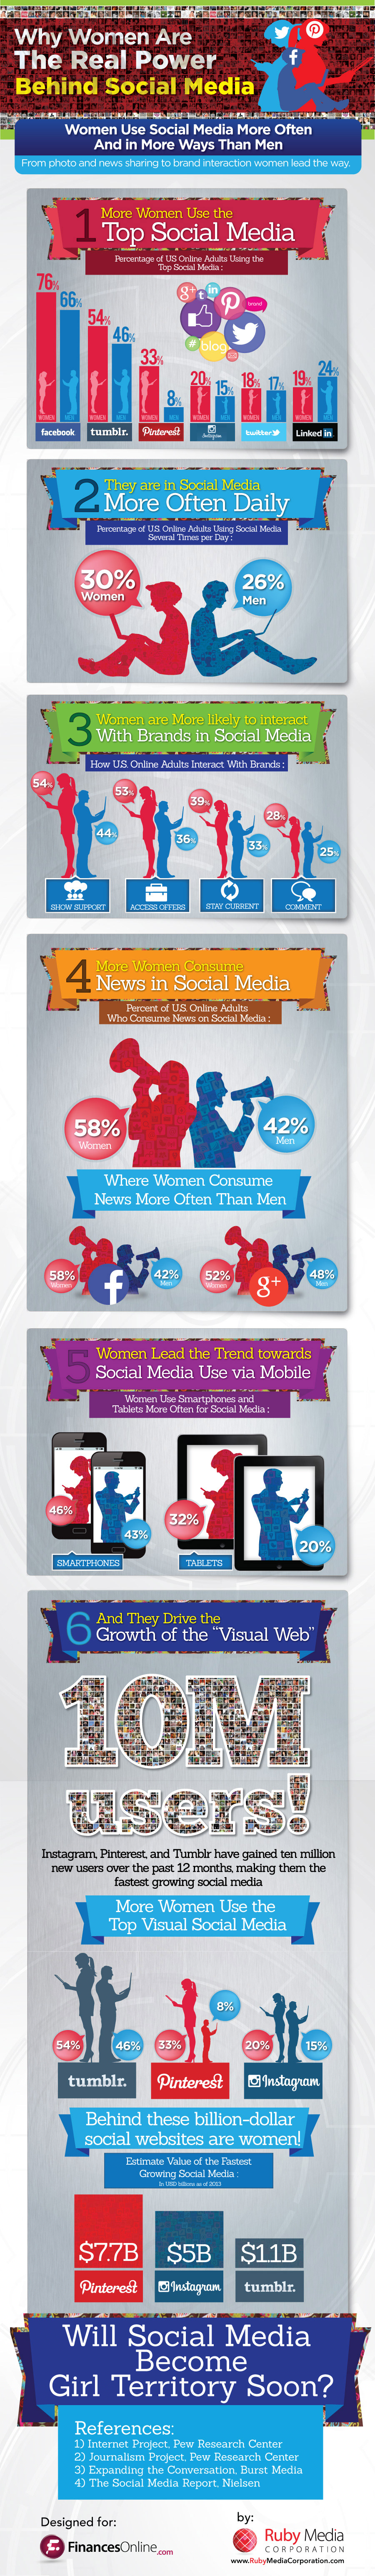 Women Dominate Socail Media